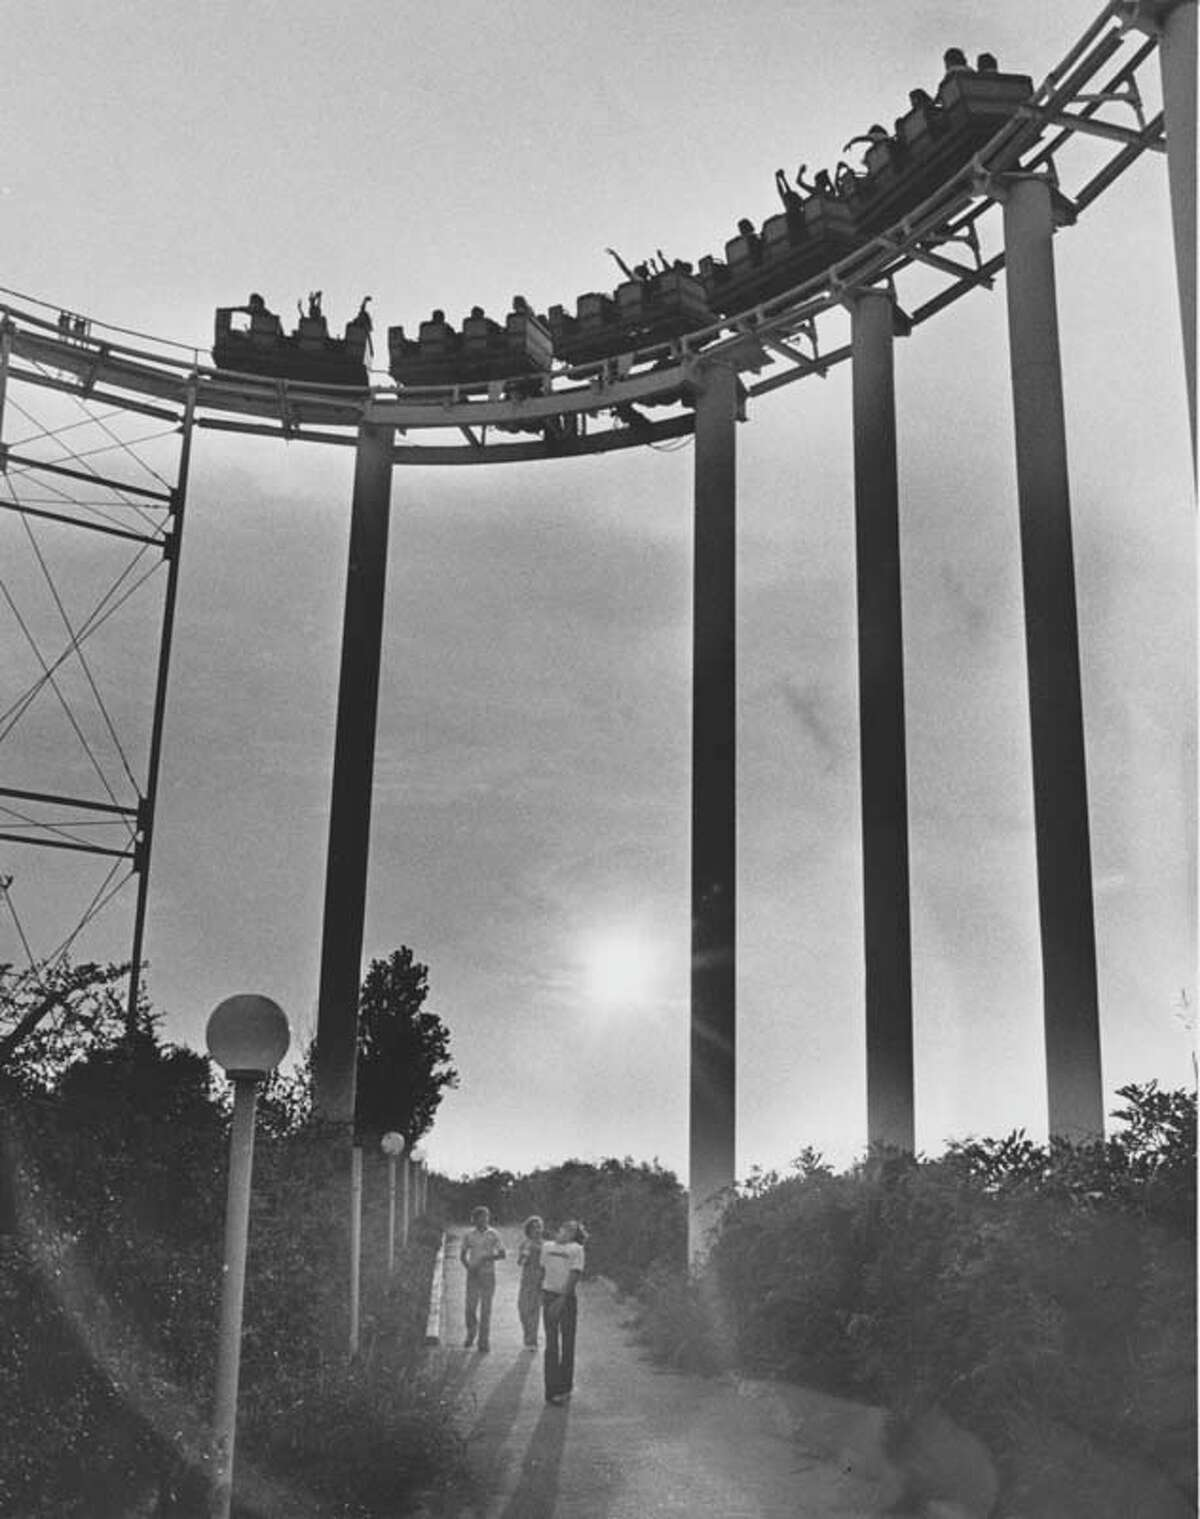 Passersby walk underneath AstroWorld's first major roller coaster, the Dexter Freebish Electric Roller Ride.